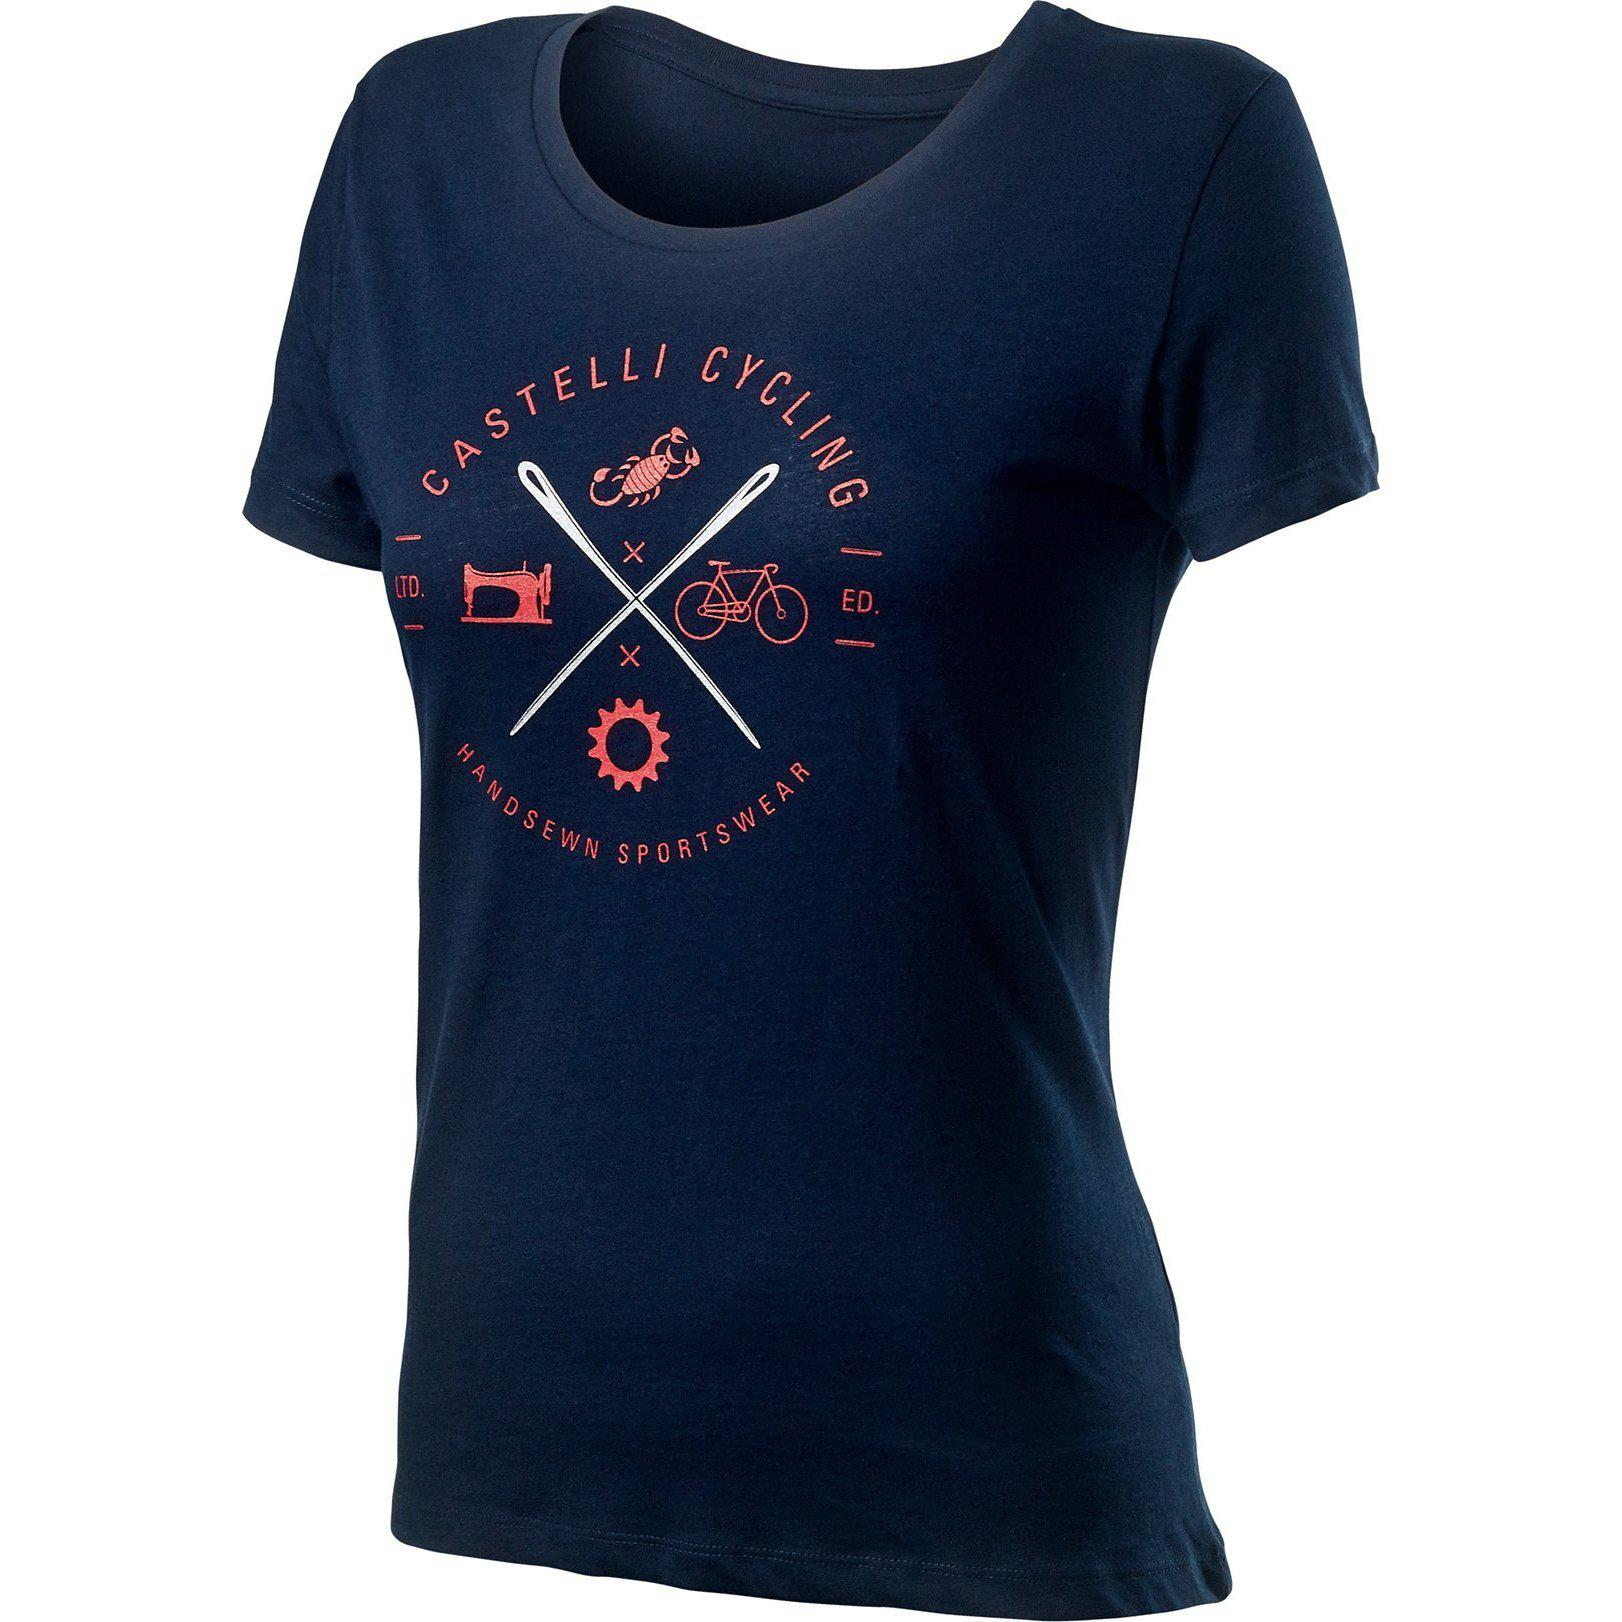 Castelli-Castelli Sarta T-shirt-Dark Infinity Blue-XS-CS201140411-saddleback-elite-performance-cycling